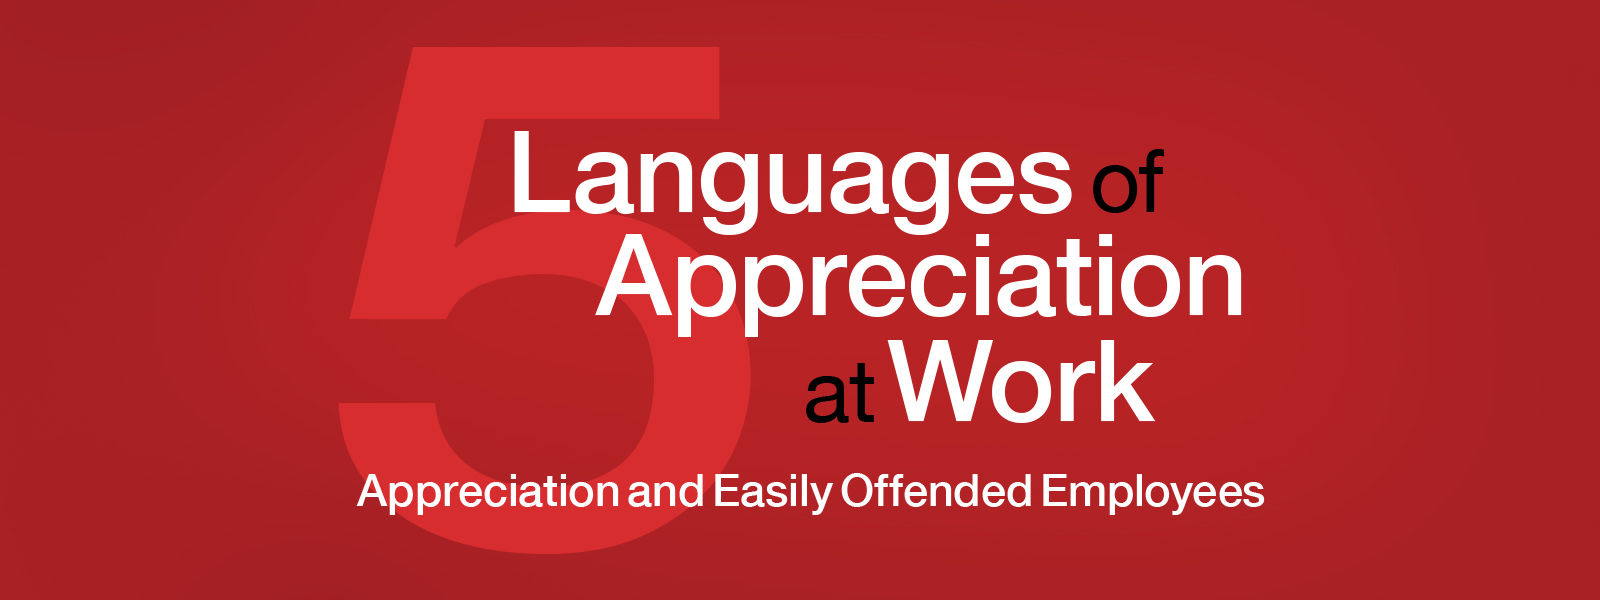 5 Languages of Appreciation: Appreciation and Easily Offended Employees